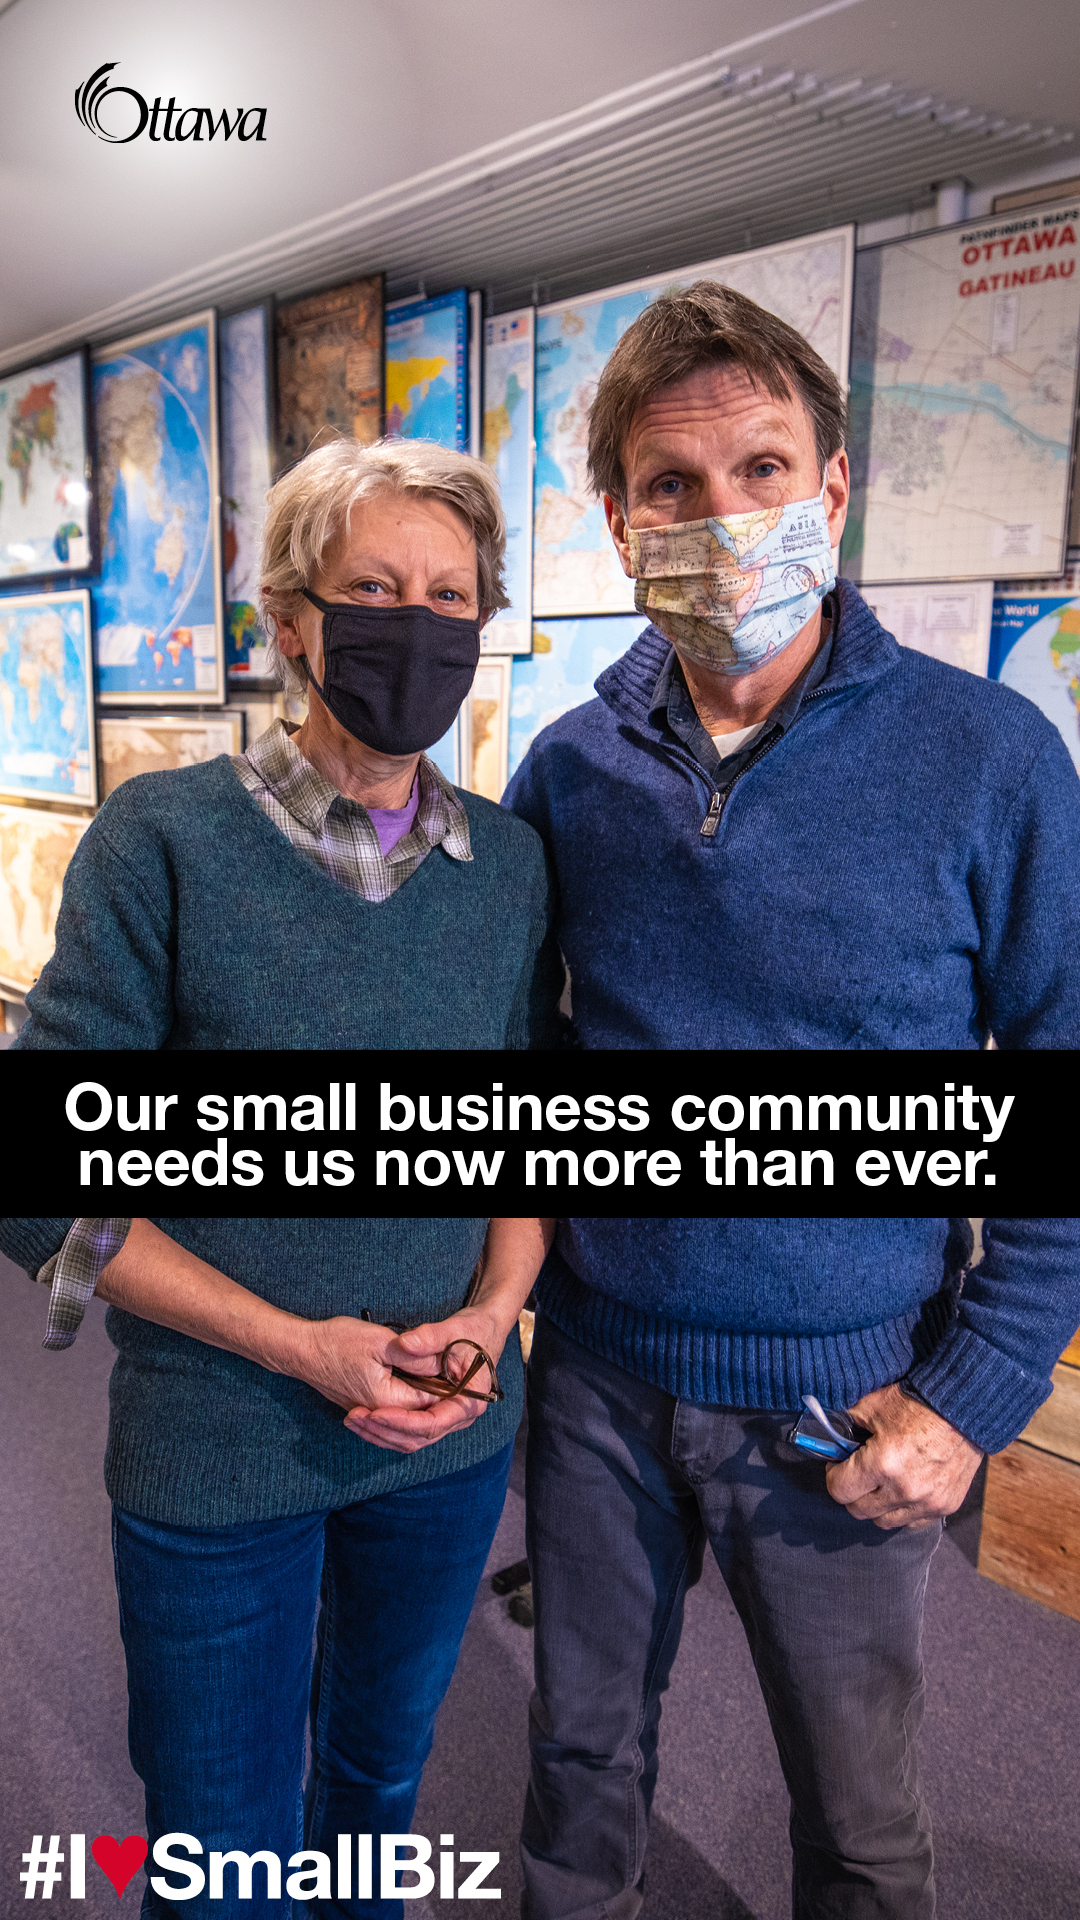 •A man and woman wearing a mask stand in a store with maps. Our small business community needs us now more than ever.